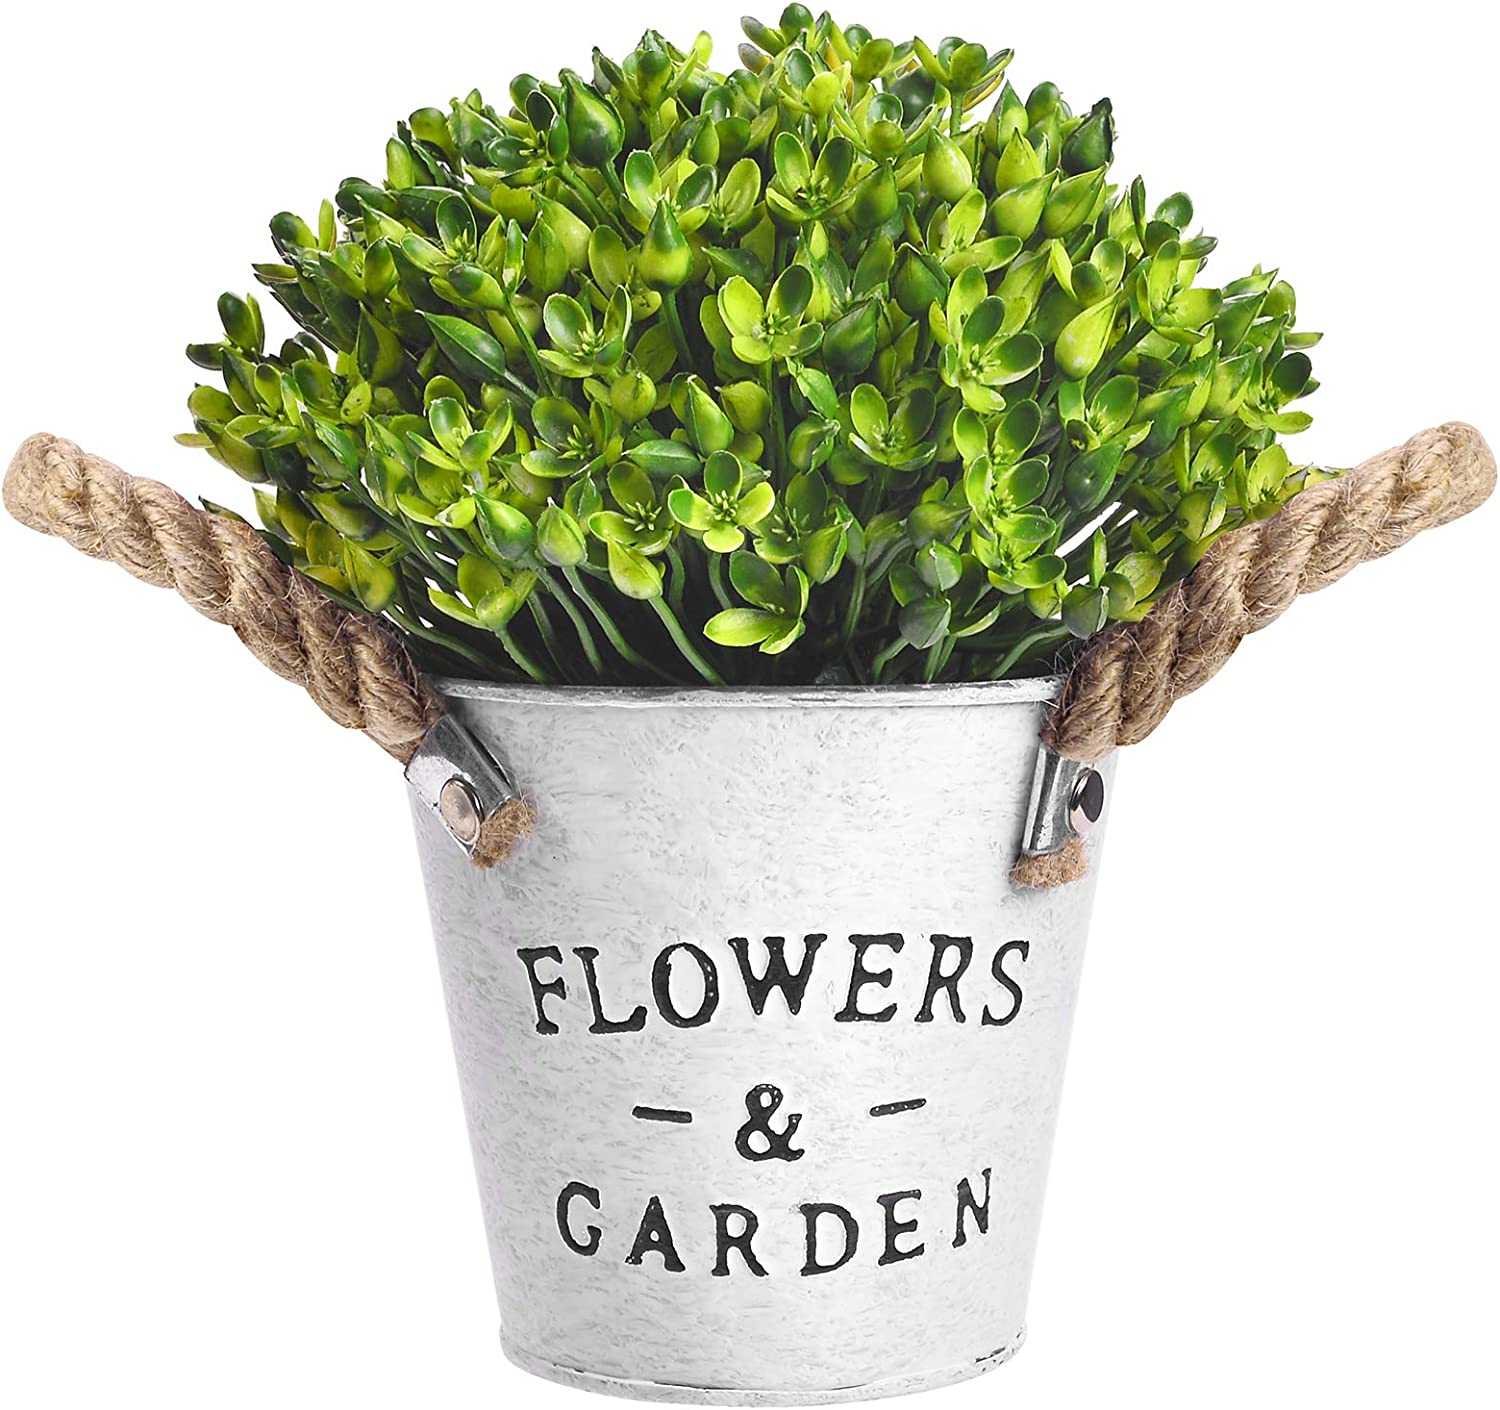 OUIVIAL Artificial Potted Plants - Fake Green Plants Medium Potted Plants Plastic Flower Plants with White Metal Basin for Home, Kitchen, Indoor Outdoor Decor. (Green Artificial Potted Plants)